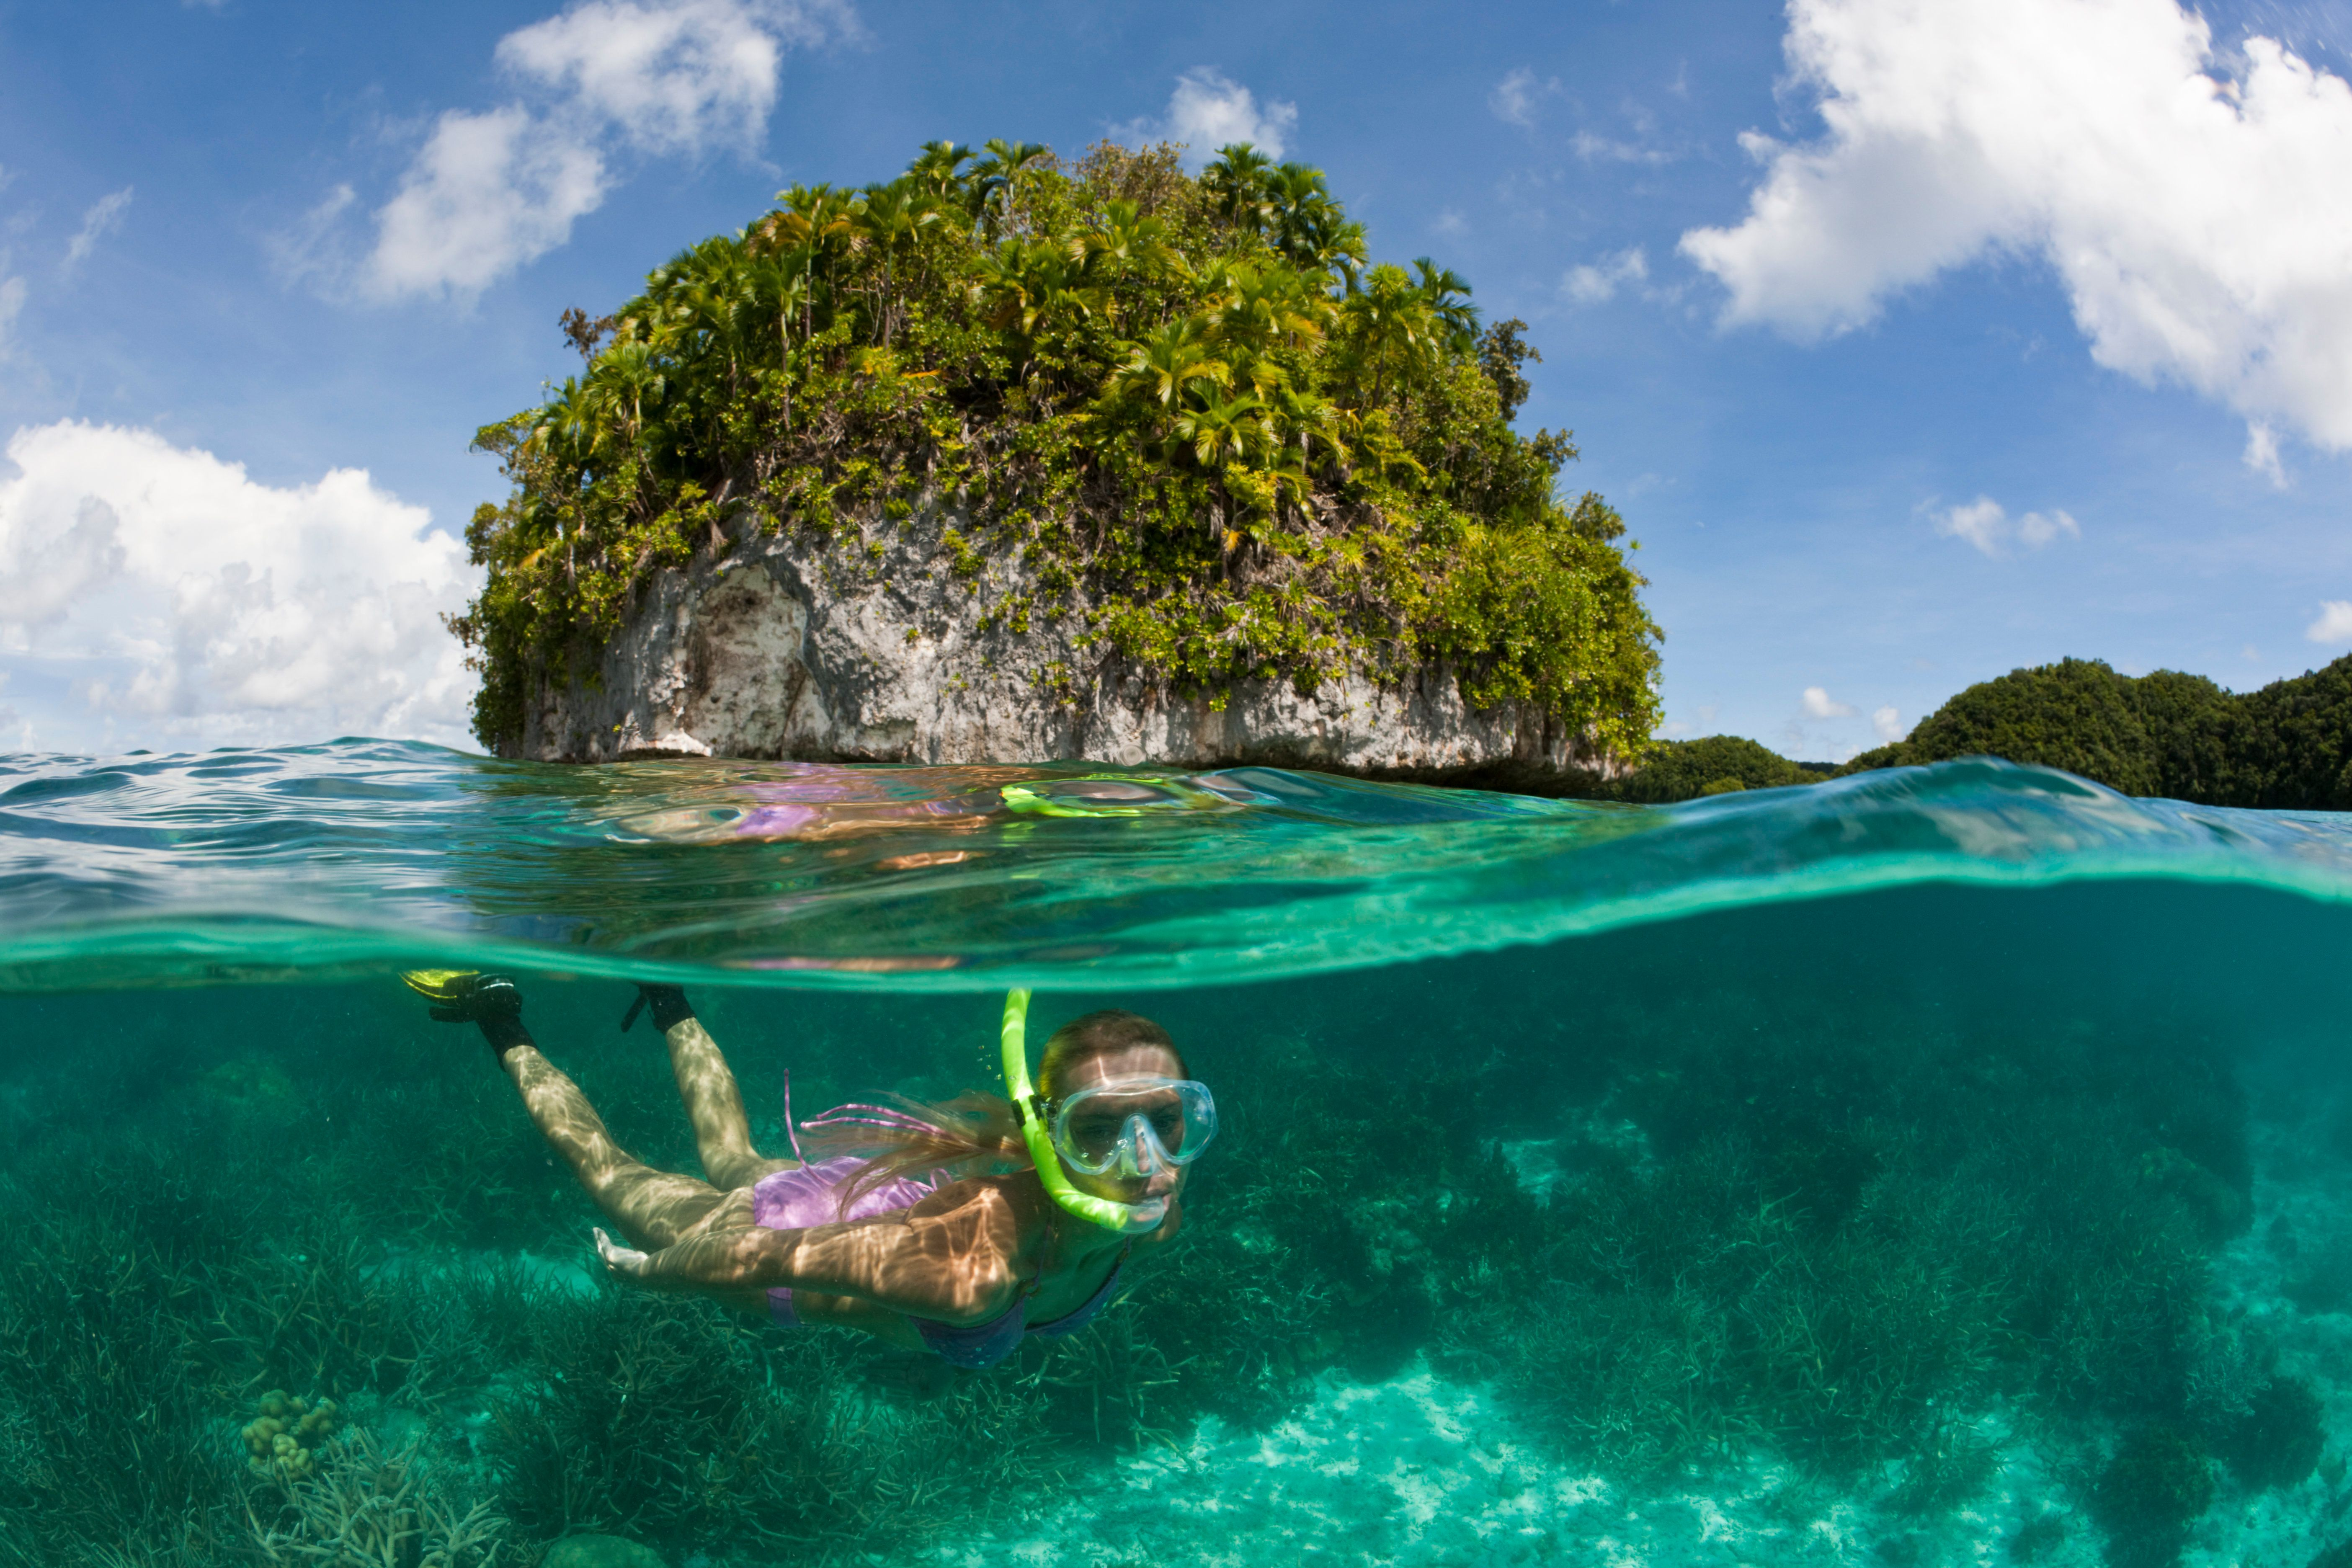 The Tiny Nation Of Palau Will Ban Most Sunscreens In Effort To Save Coral